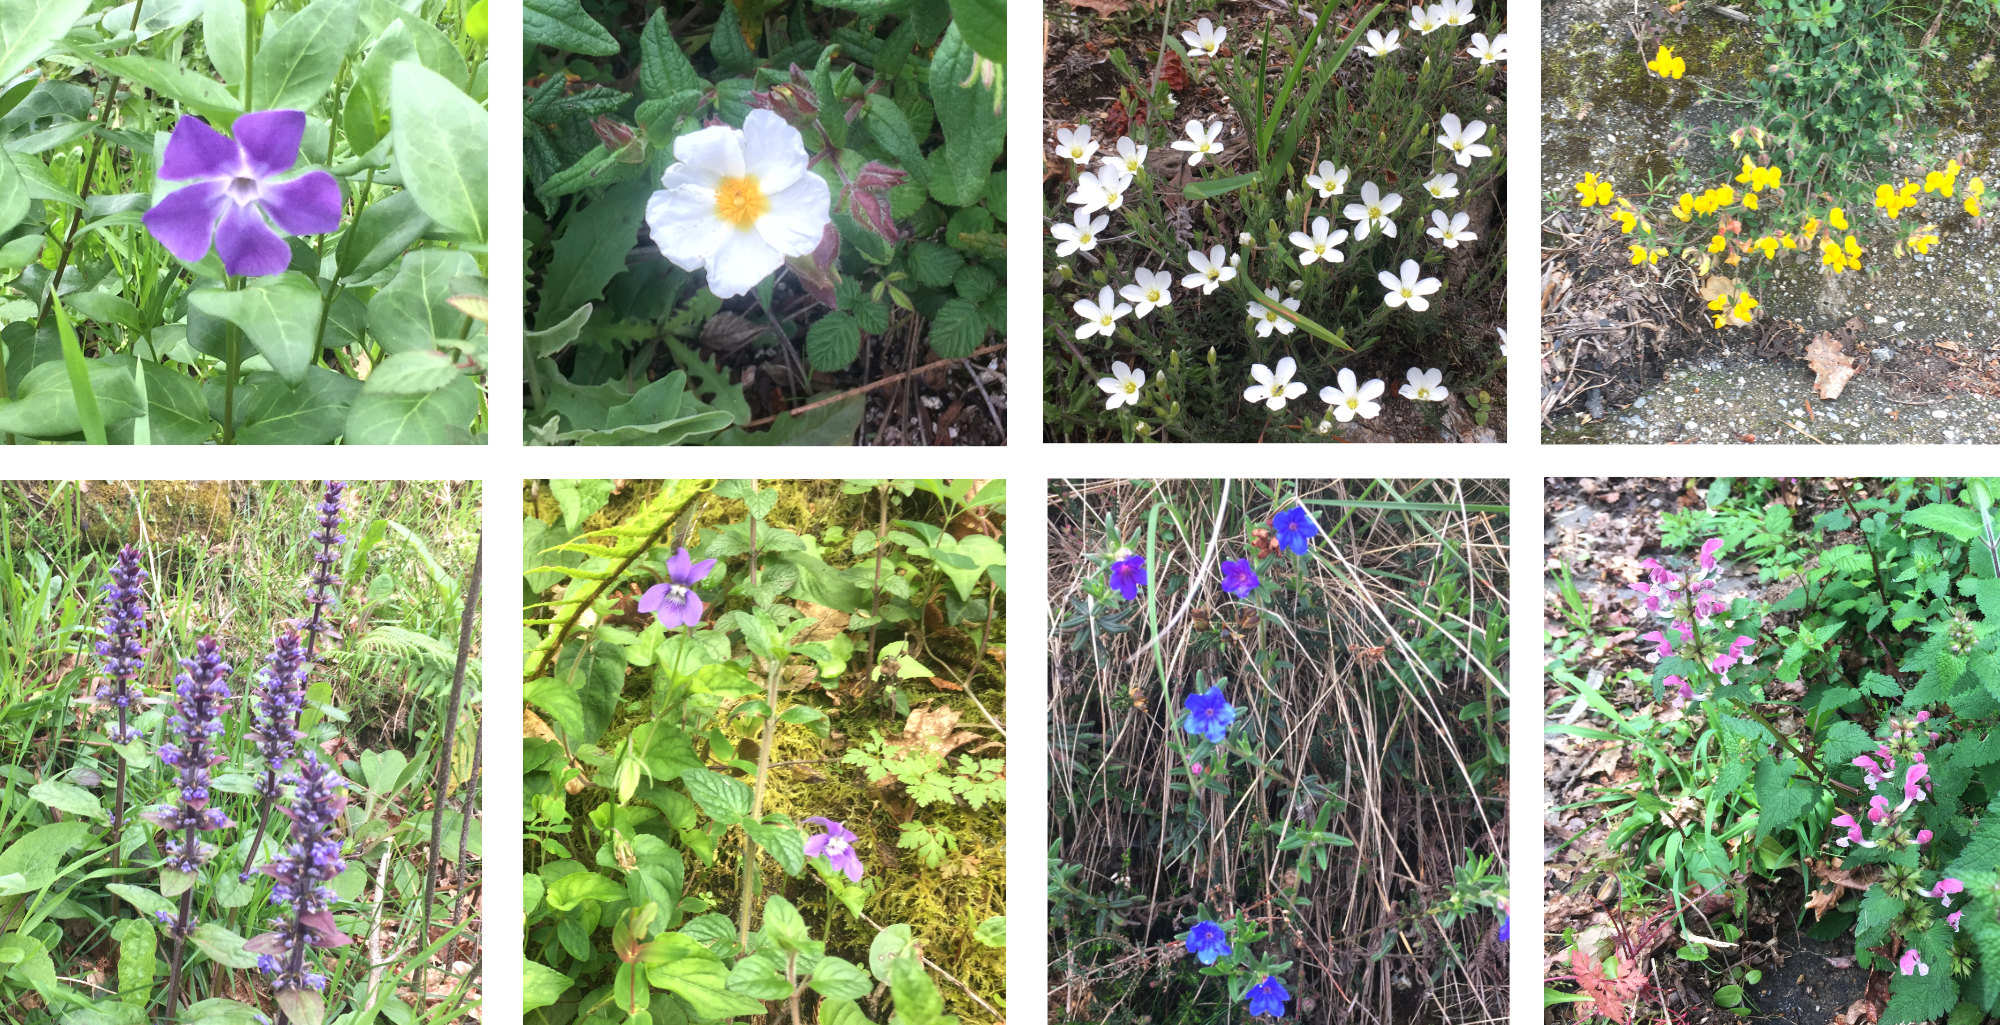 A collection of woodside wild flowers